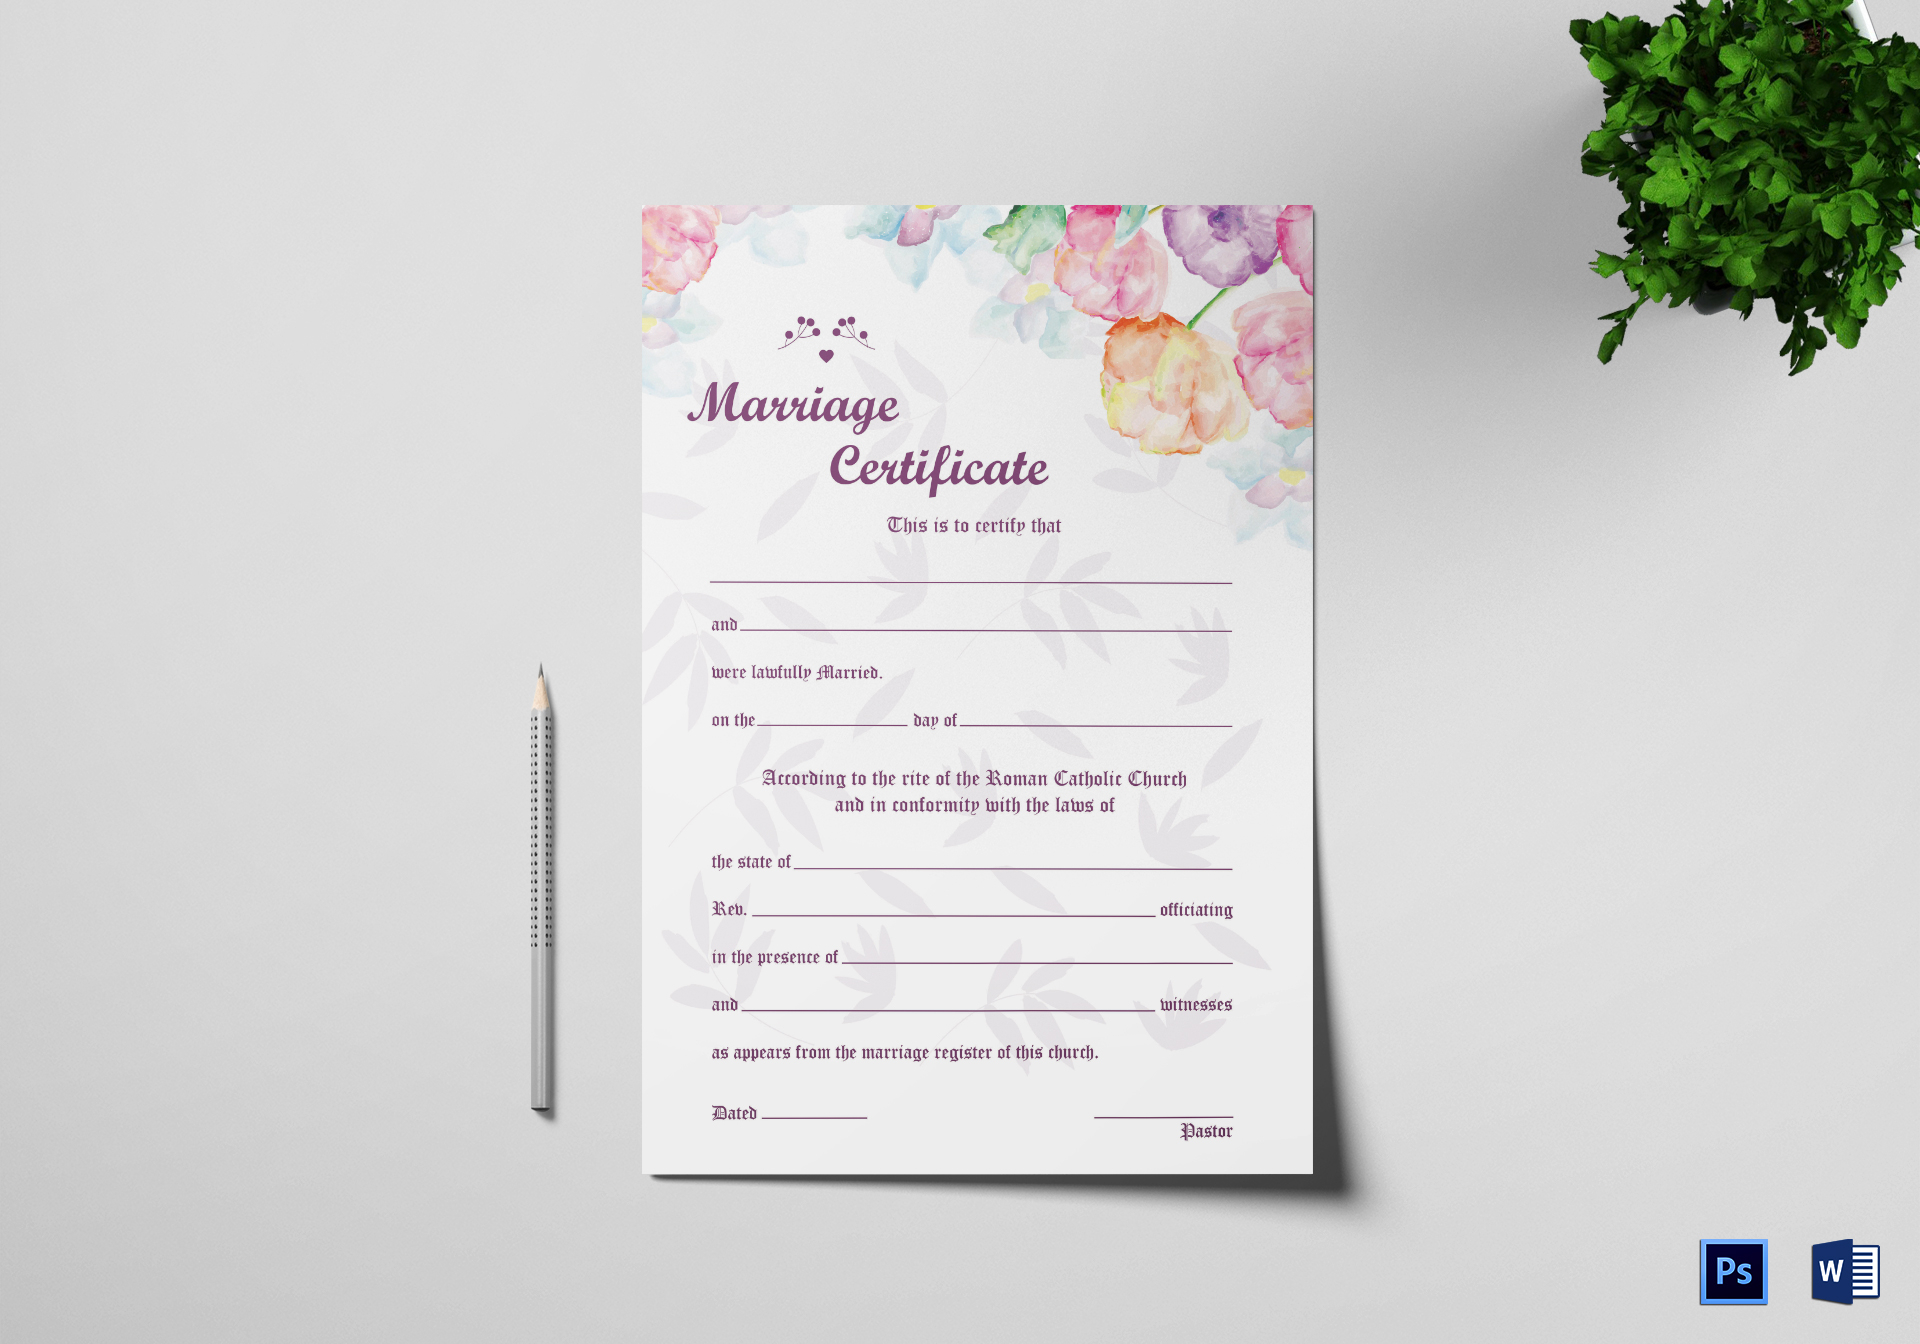 Vintage Marriage Certificate Design Template In Psd Word: Watercolor Wedding Certificate Design Template In PSD, Word